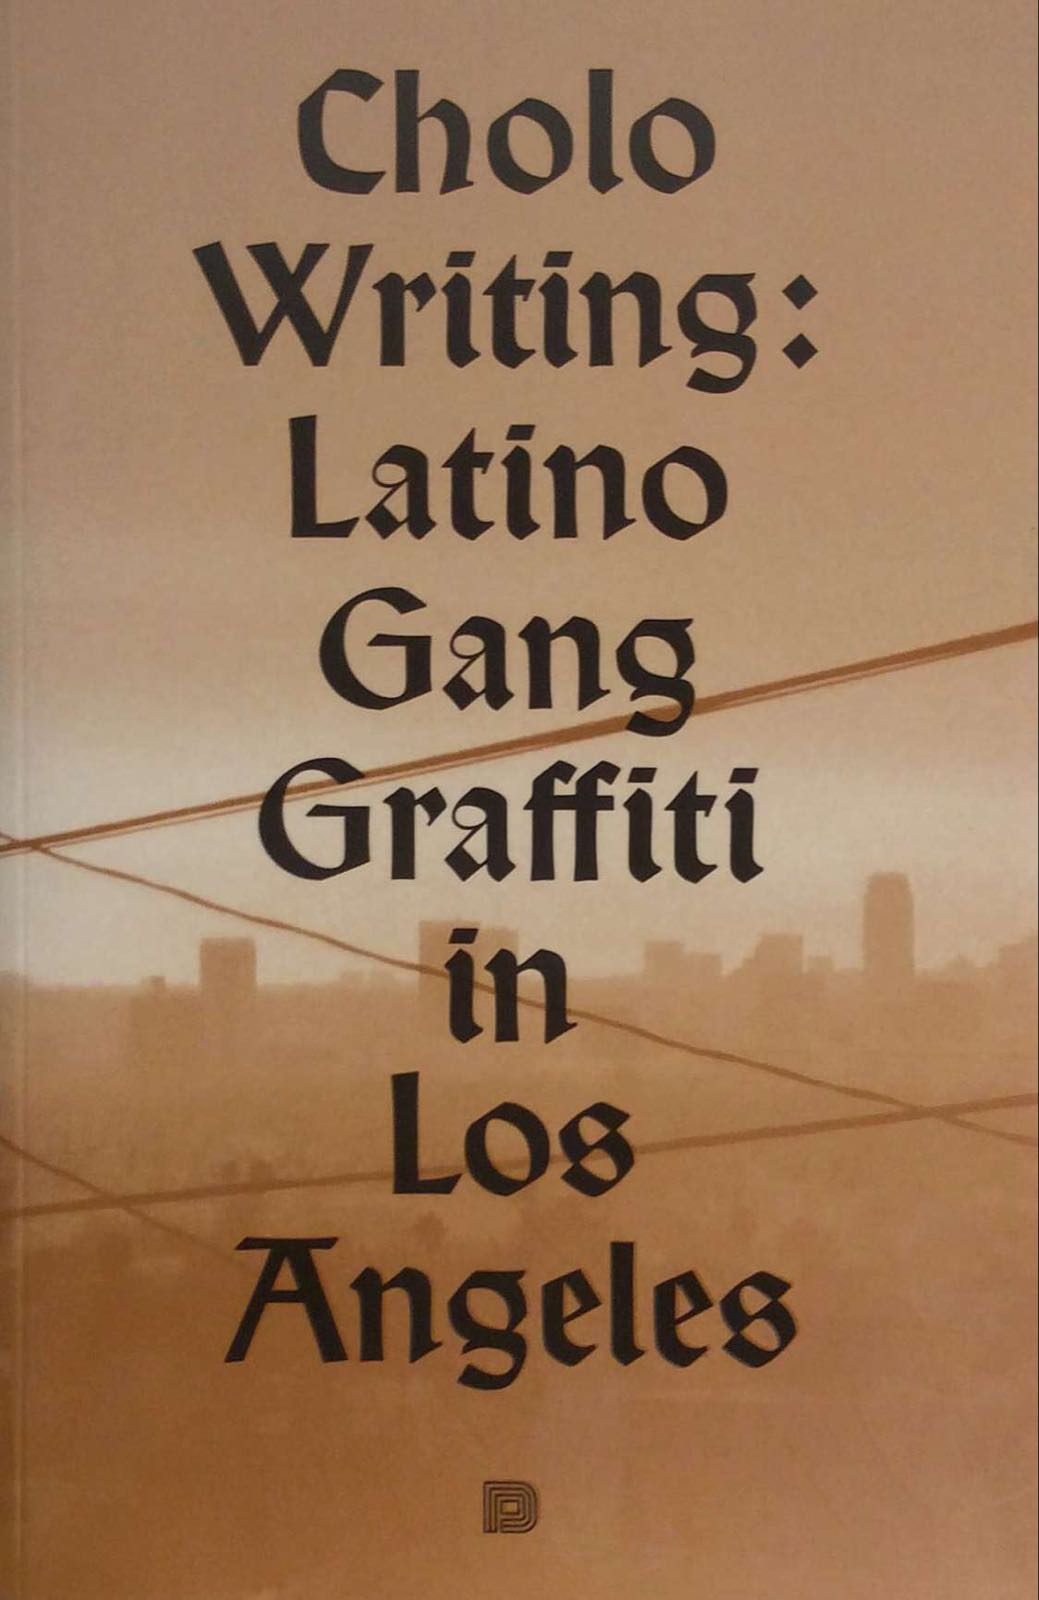 Chastanet, François. Cholo Writing : Latino Gang Graffiti in Los Angeles